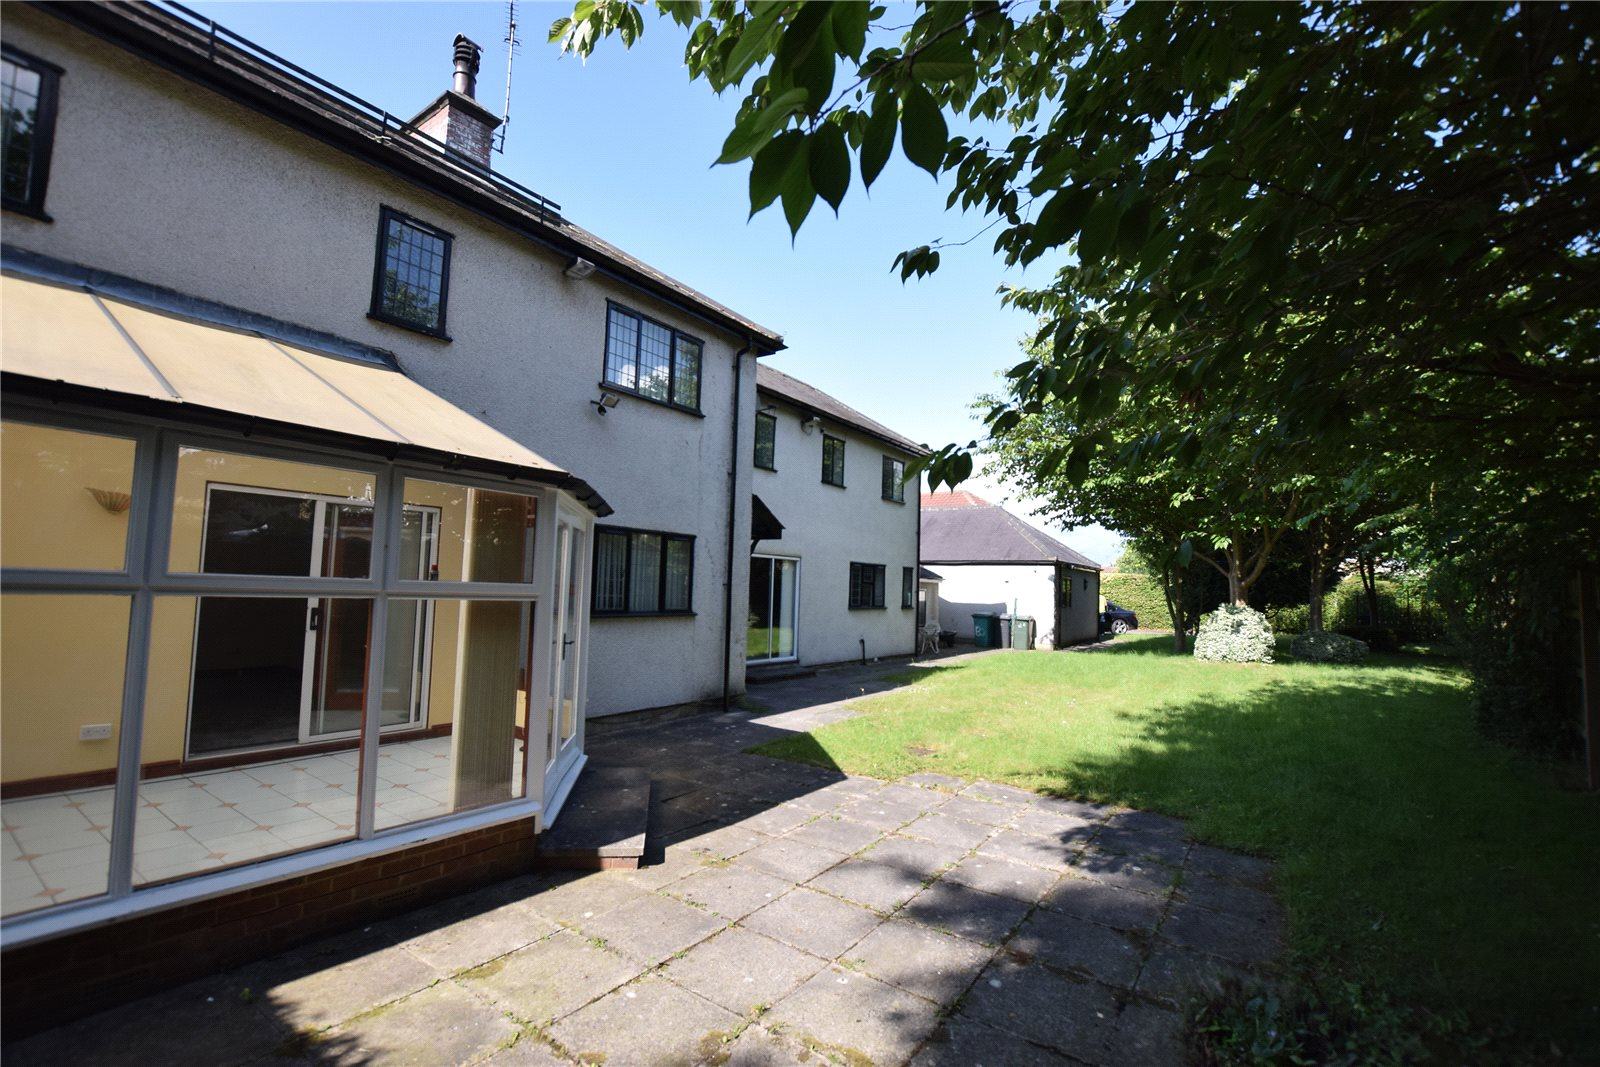 property to let in leeds, Exterior large family home